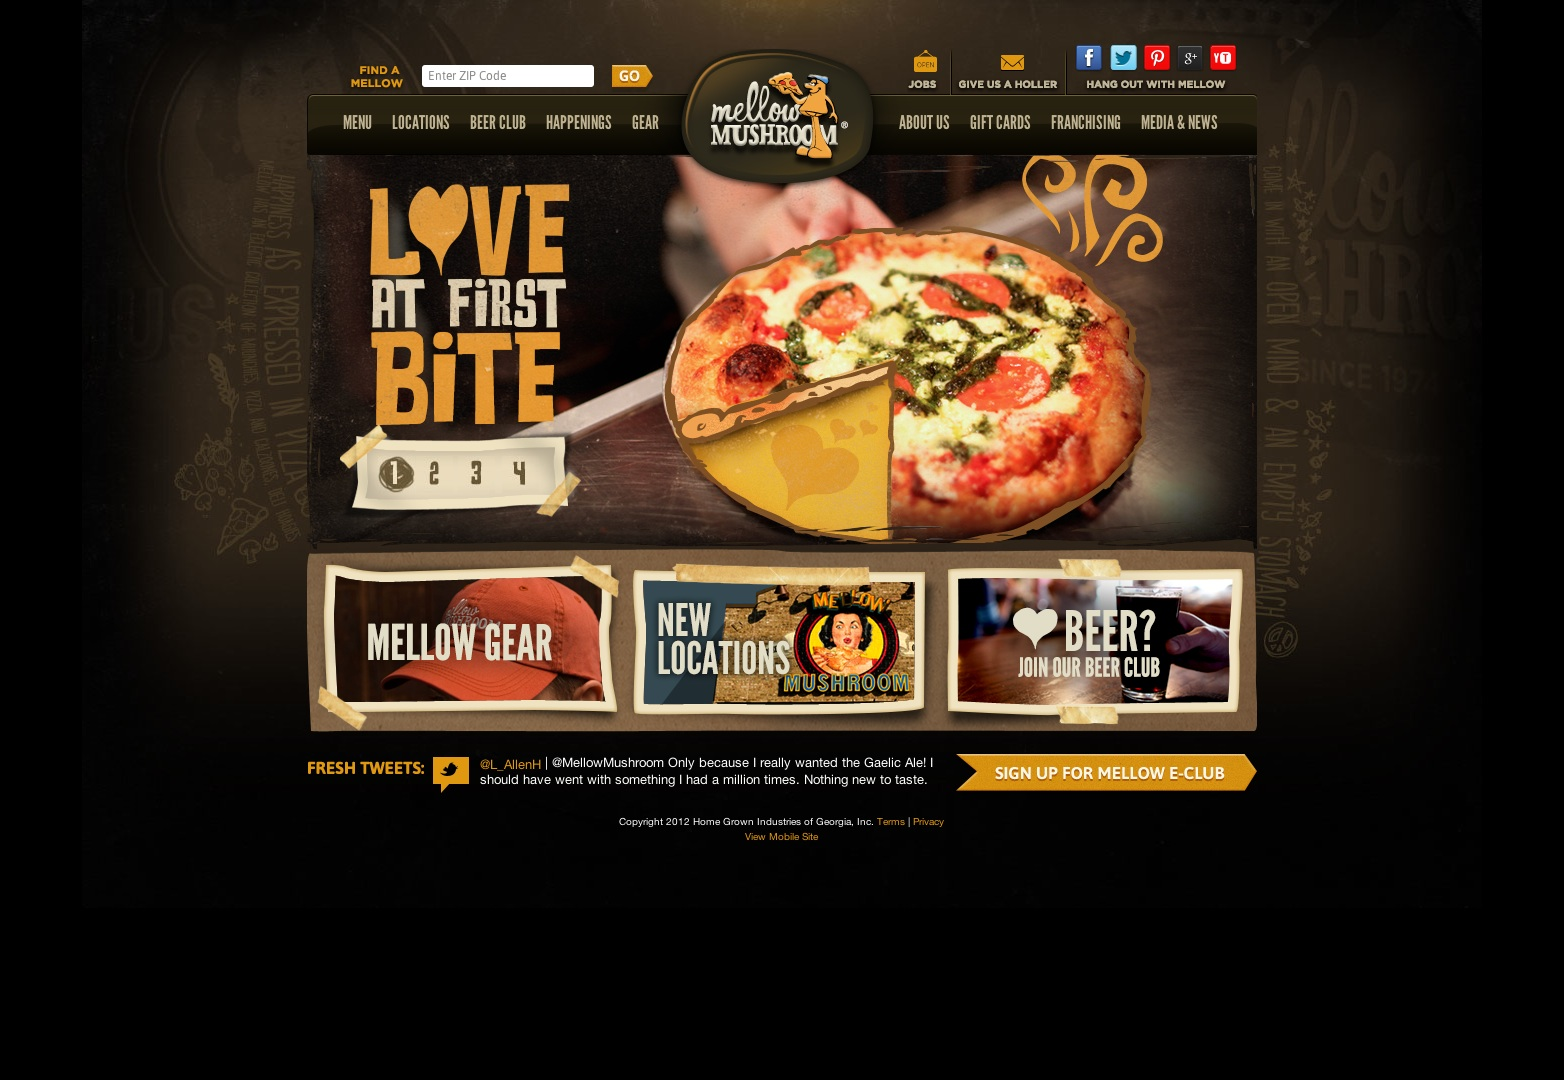 Best restaurant websites design images